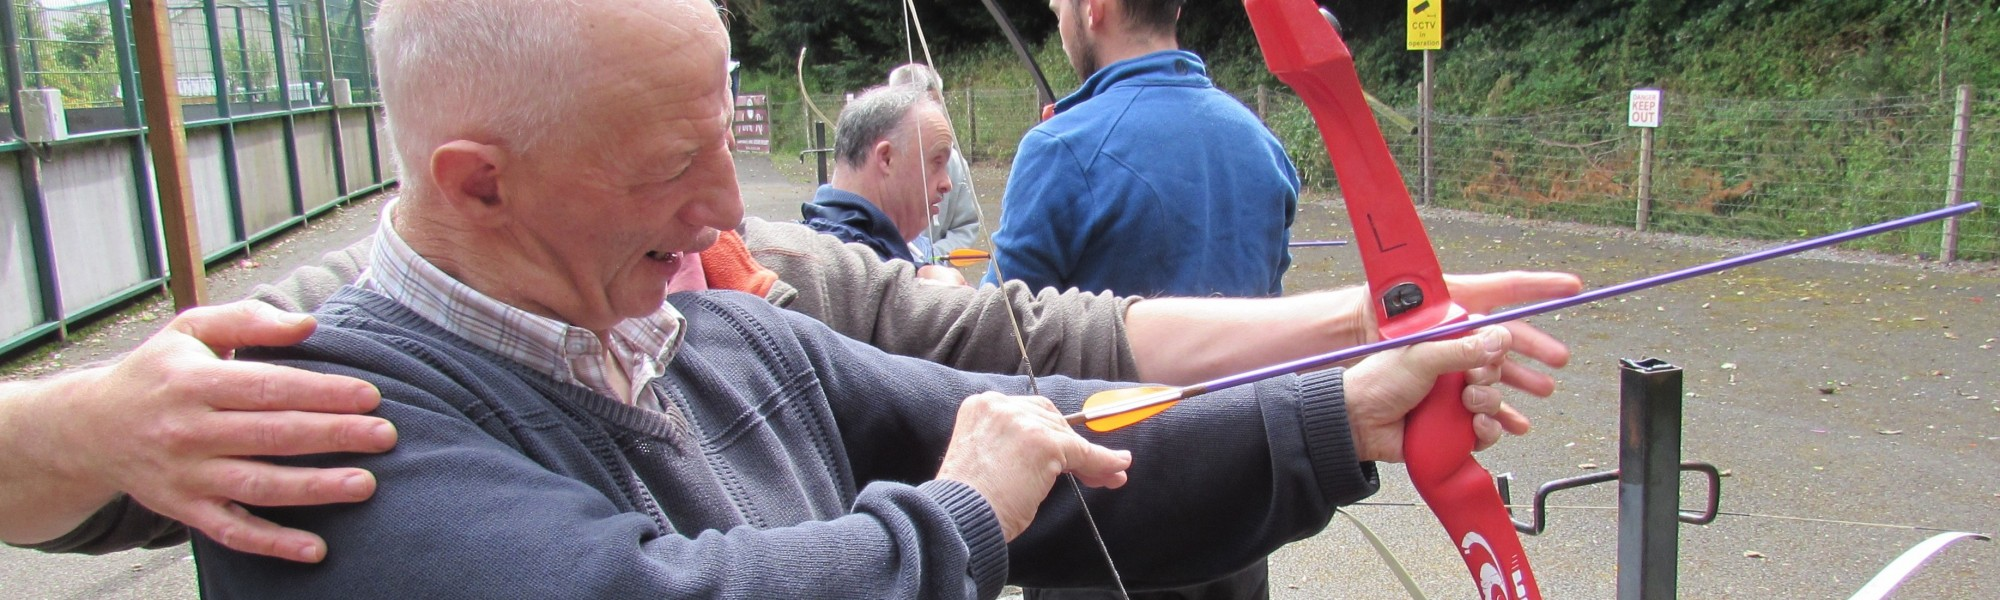 Man being supported to aim and shoot an arrow